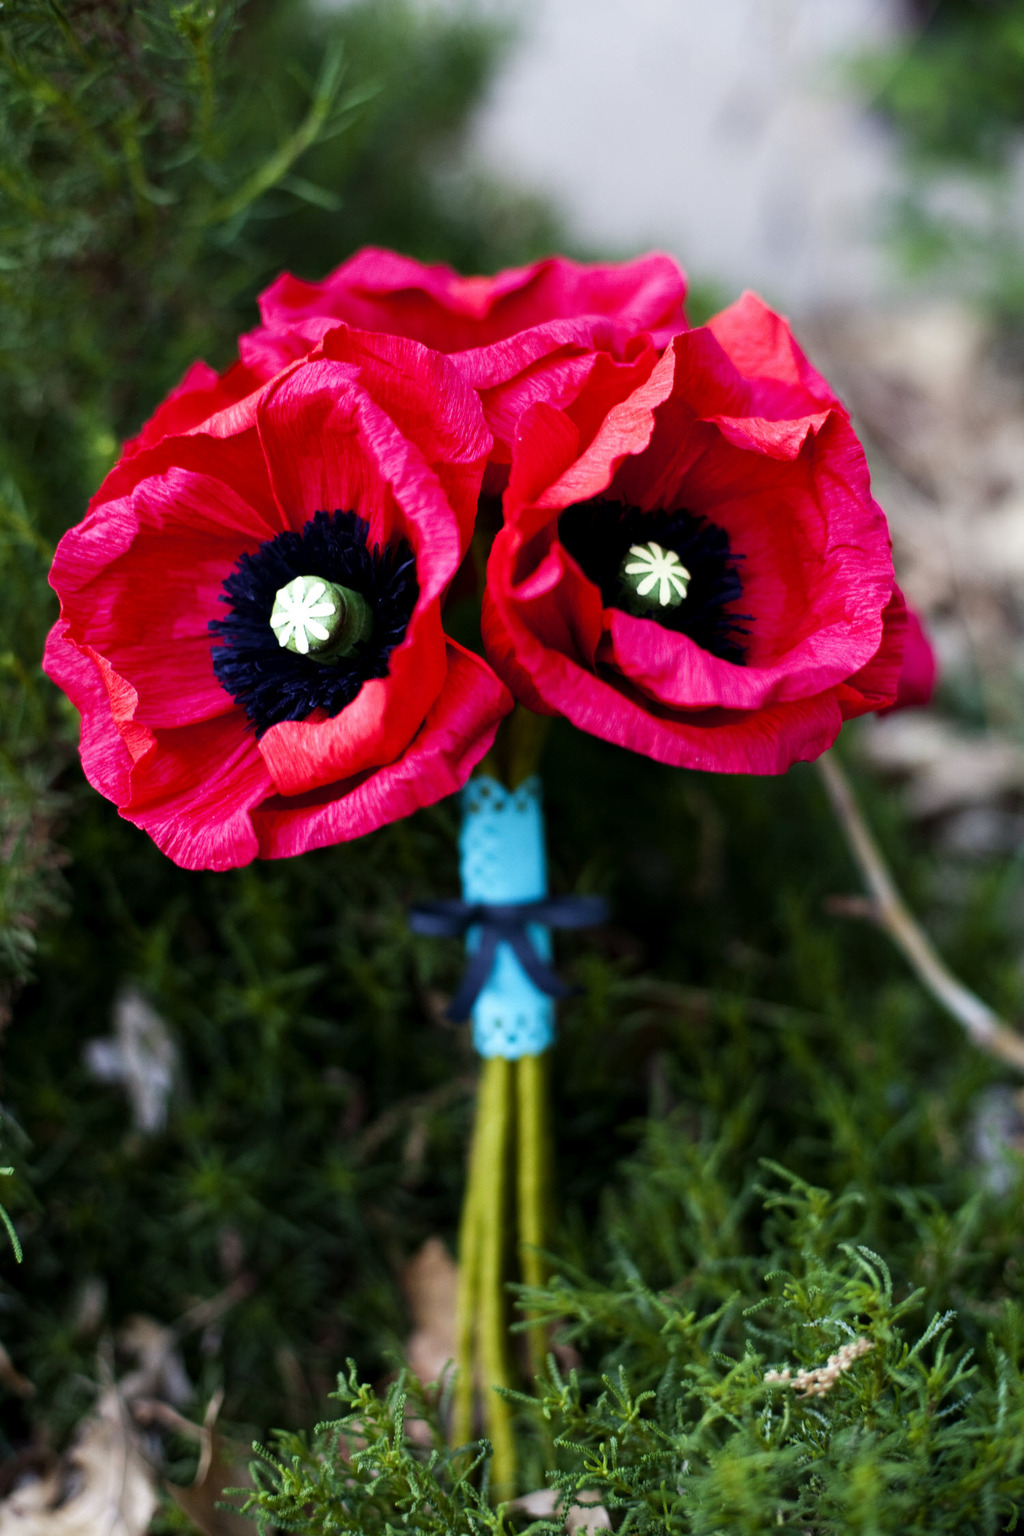 Unconventional-wedding-flowers-vibrant-red-poppy-bridal-bouquet-handmade-paper-flowers.full